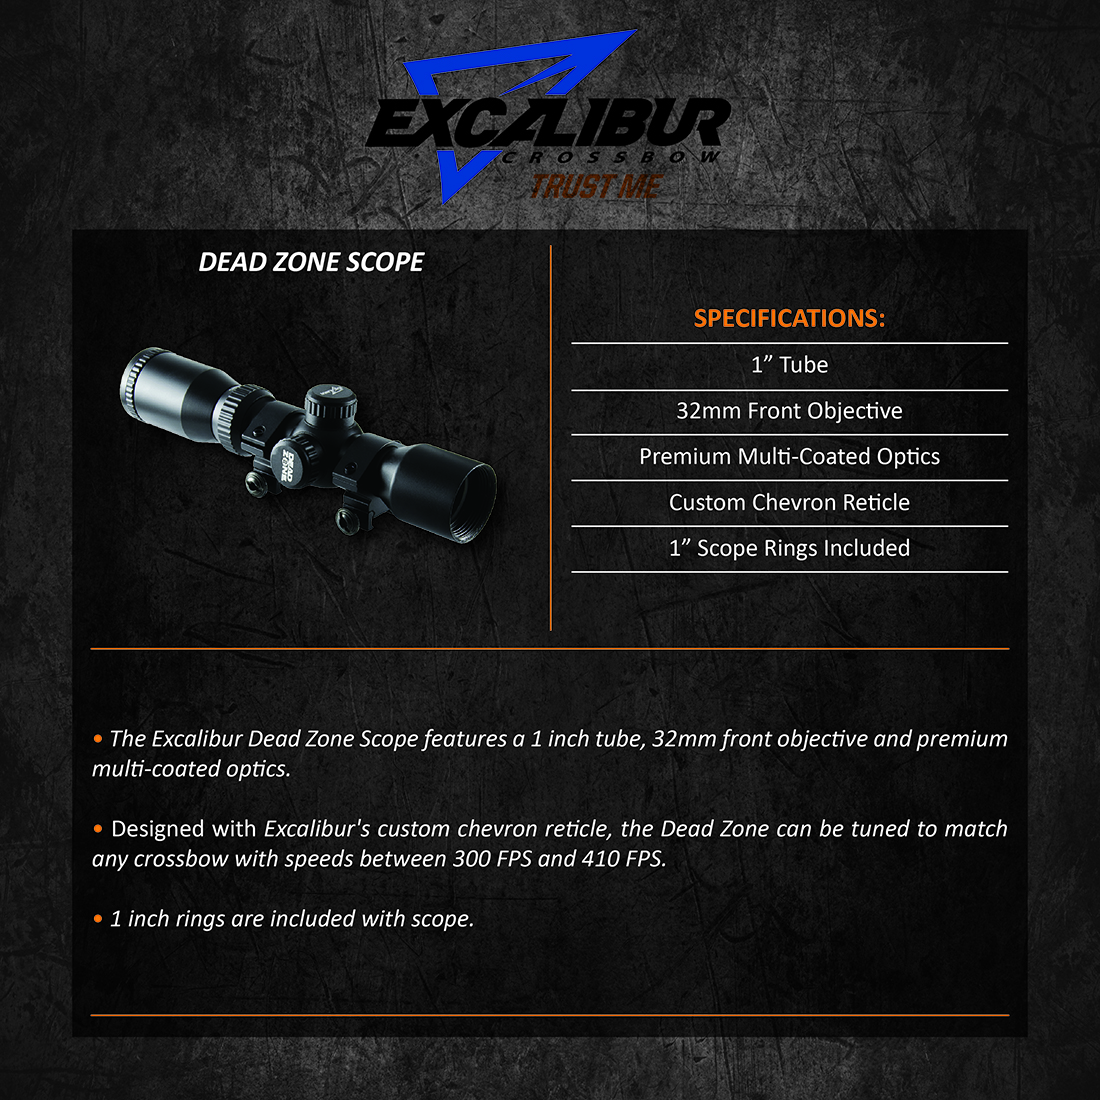 Excalibur_Dead_Zone_Scope_Product_Description